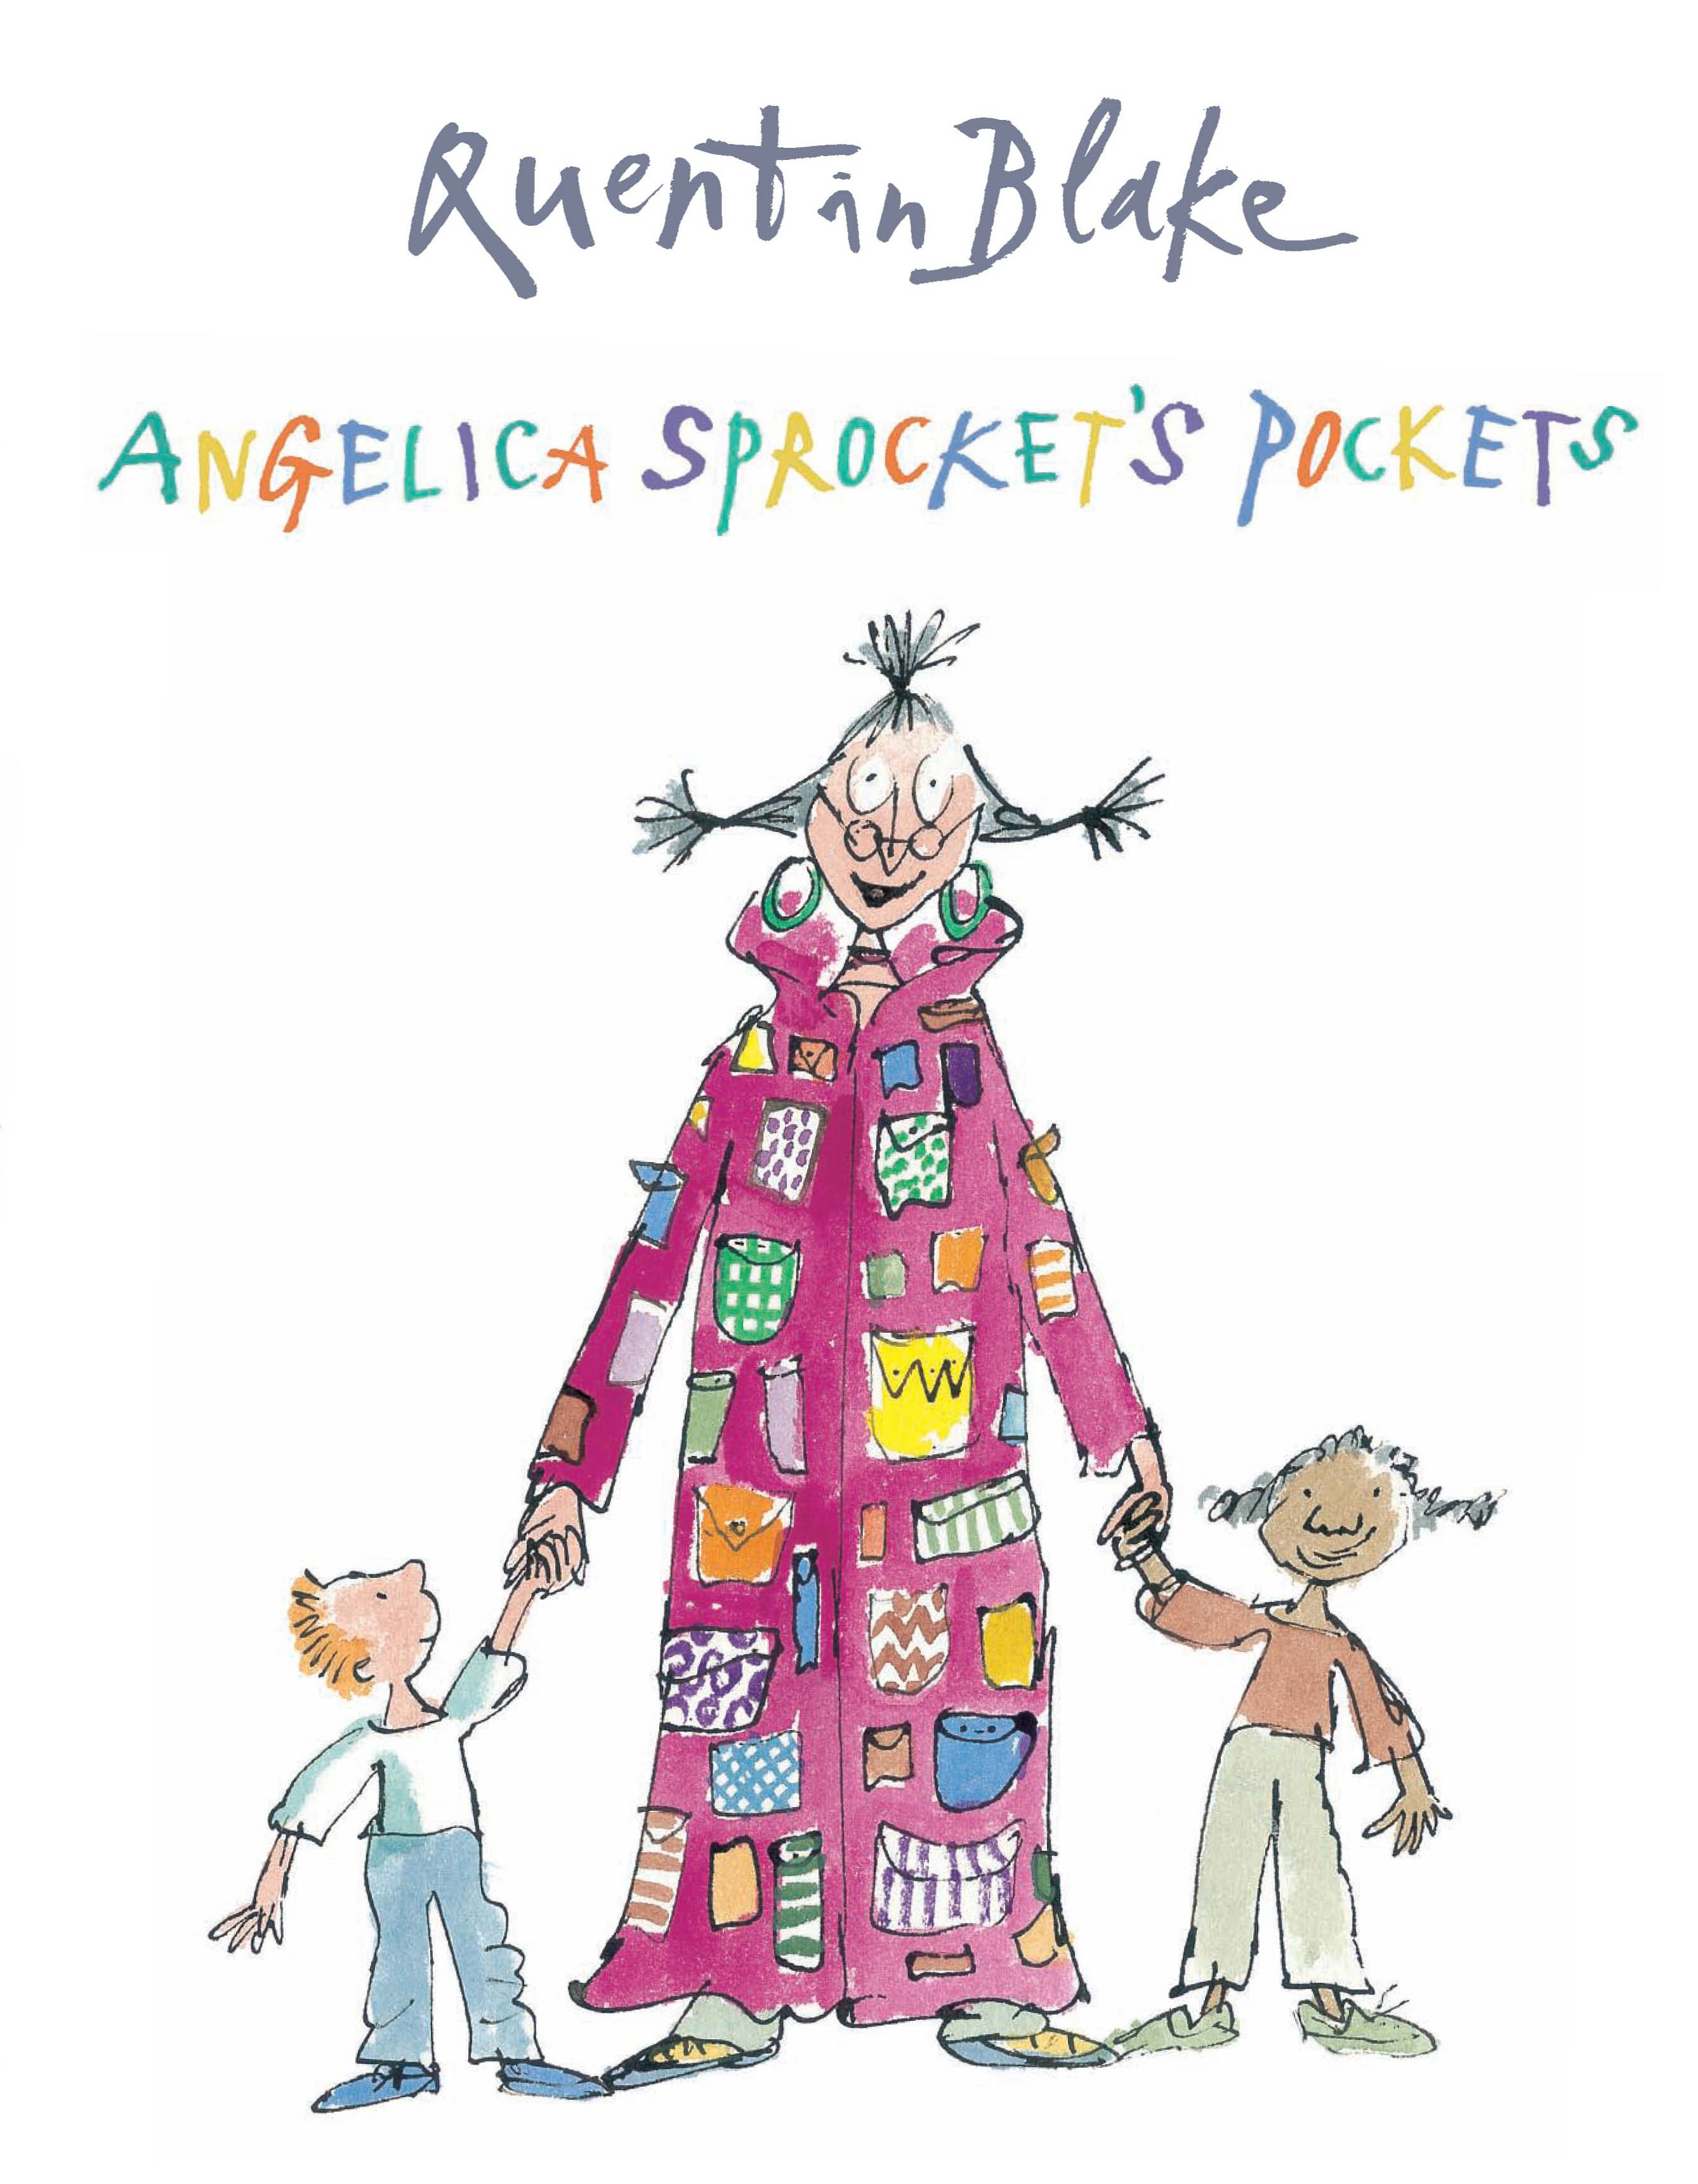 Angels Sprocket's Pockets